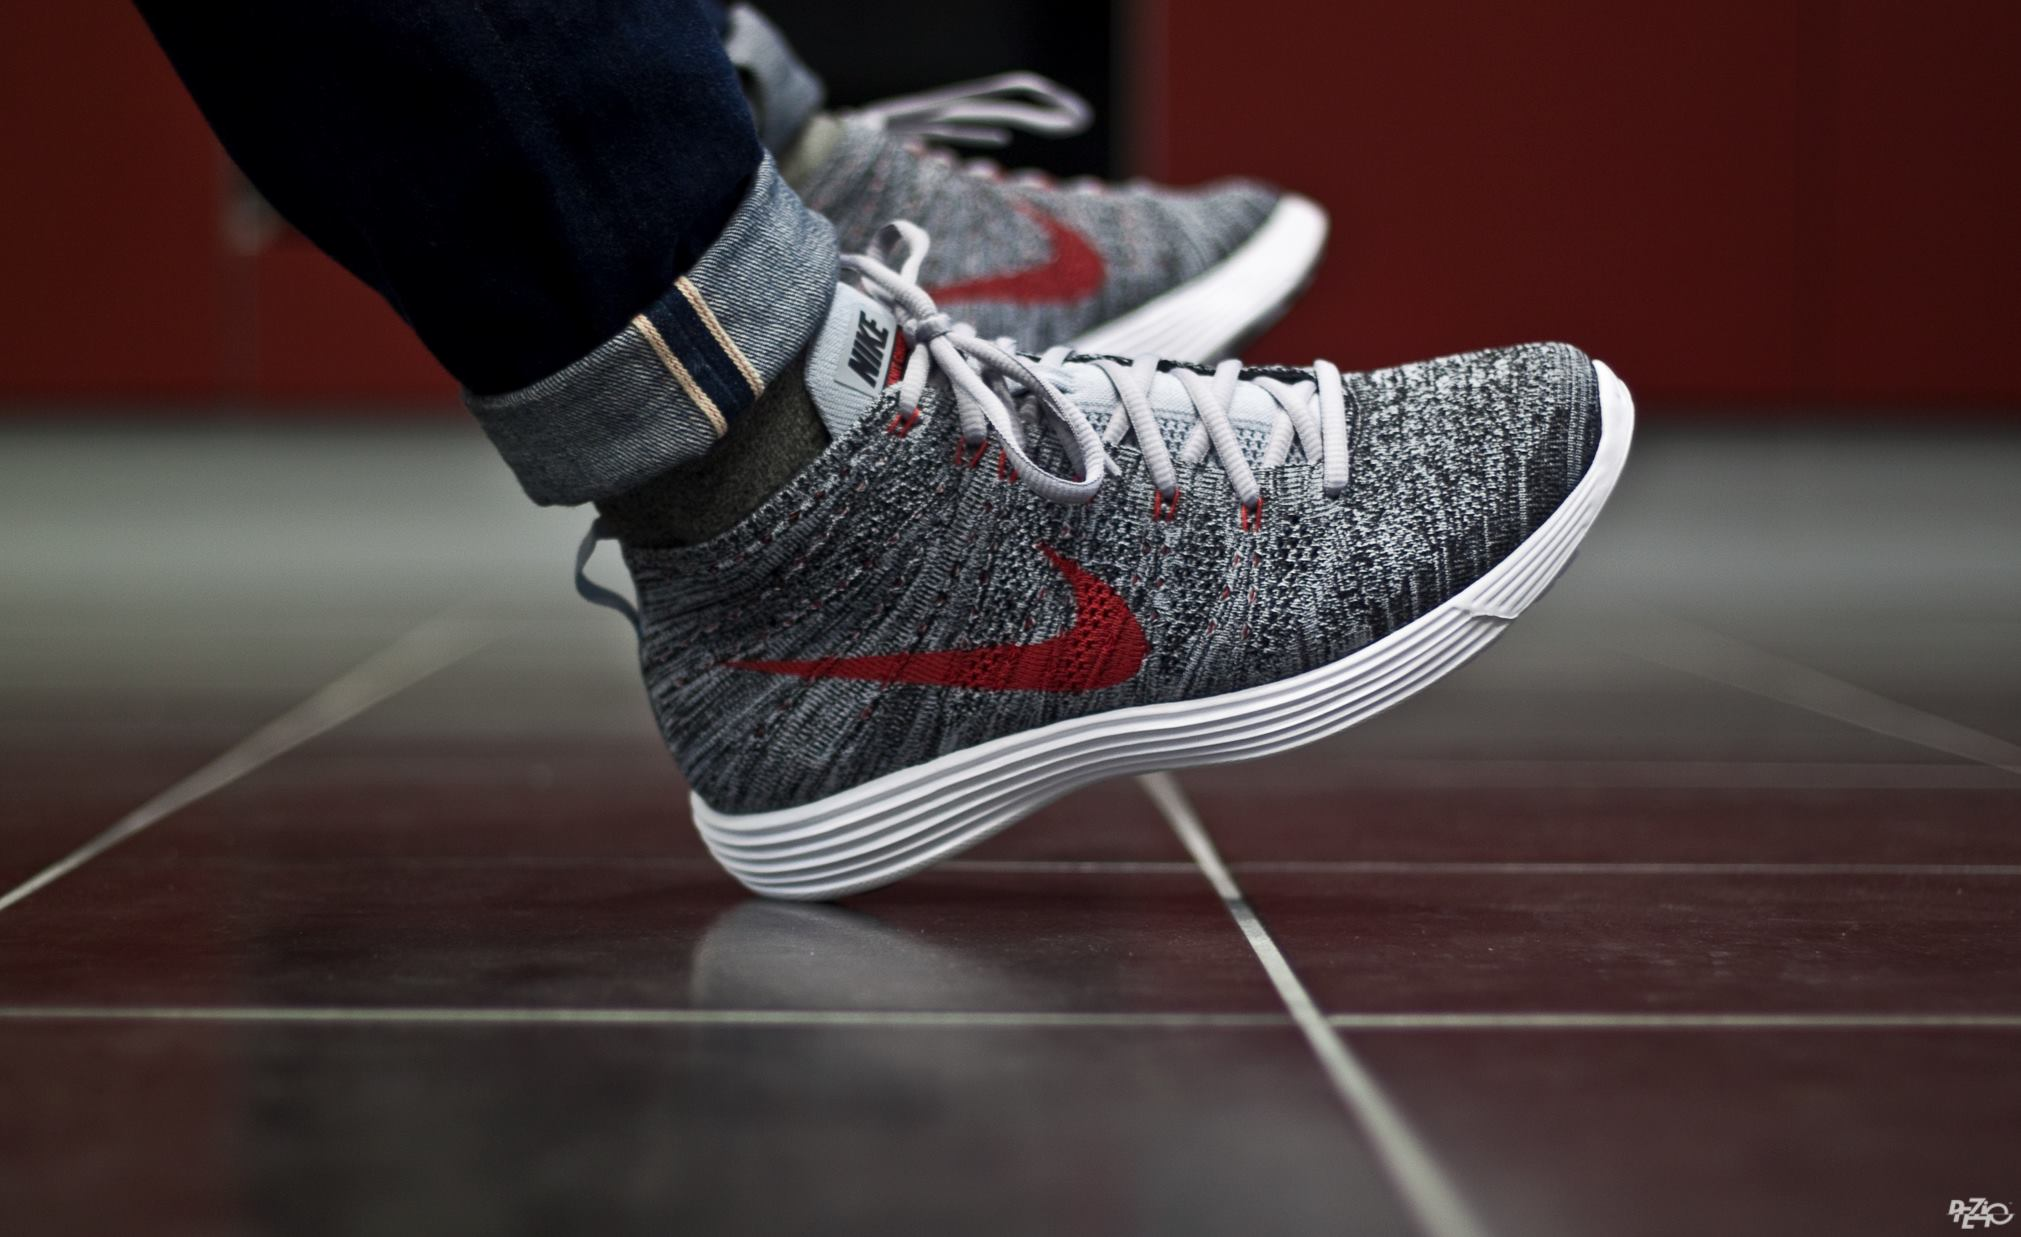 Nike Nike Lunar Flyknit Chukka Wolf Size 13 - Low-Top Sneakers for ... 0f55e3d3f